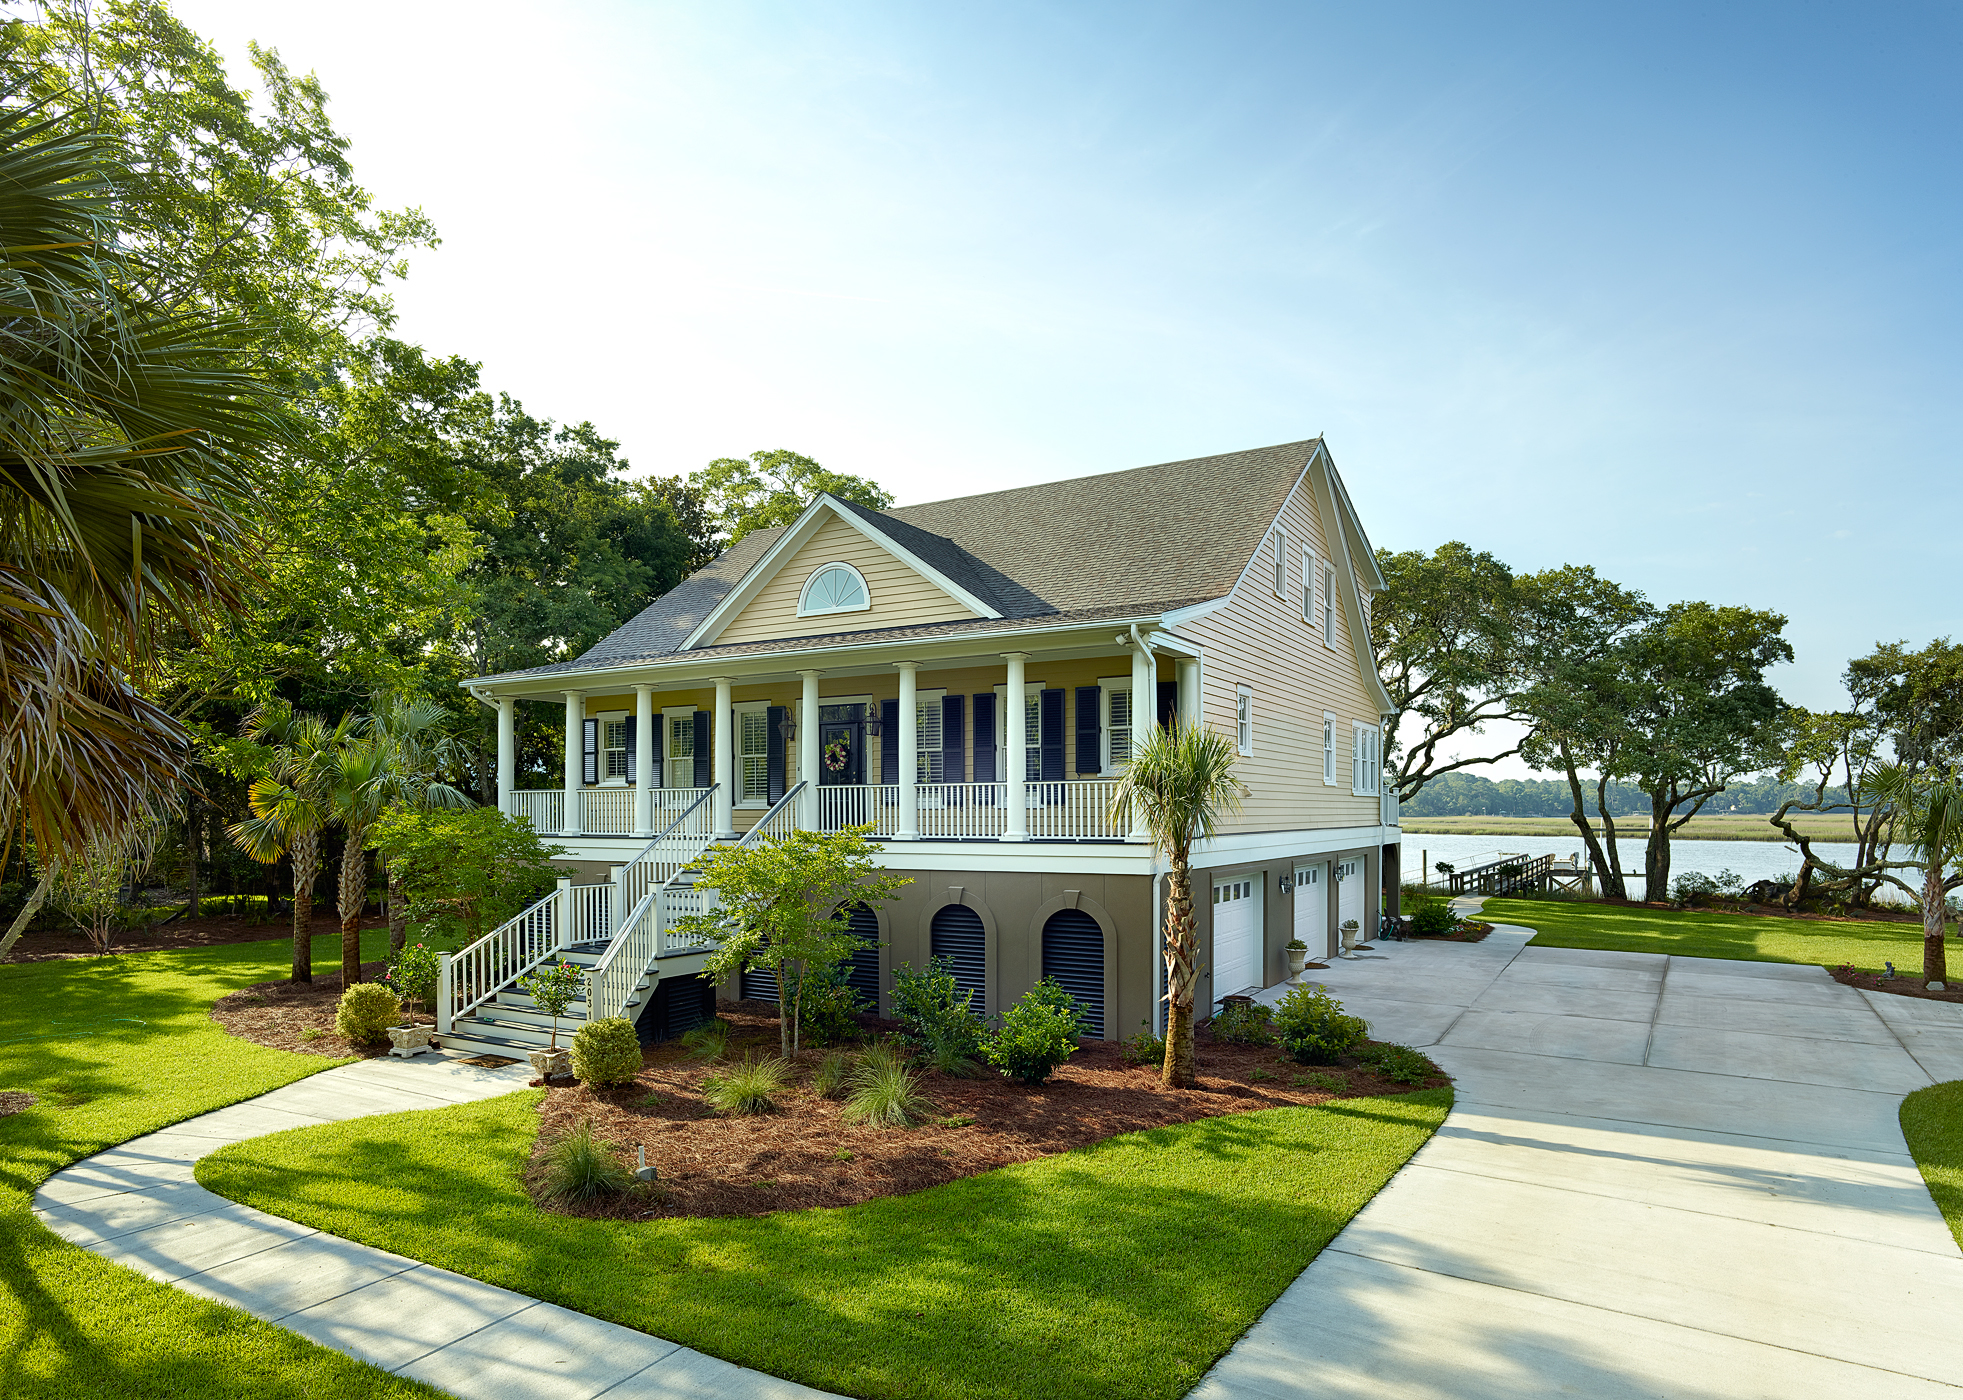 2013 prism award winner priester 39 s custom contracting llc for Low country homes